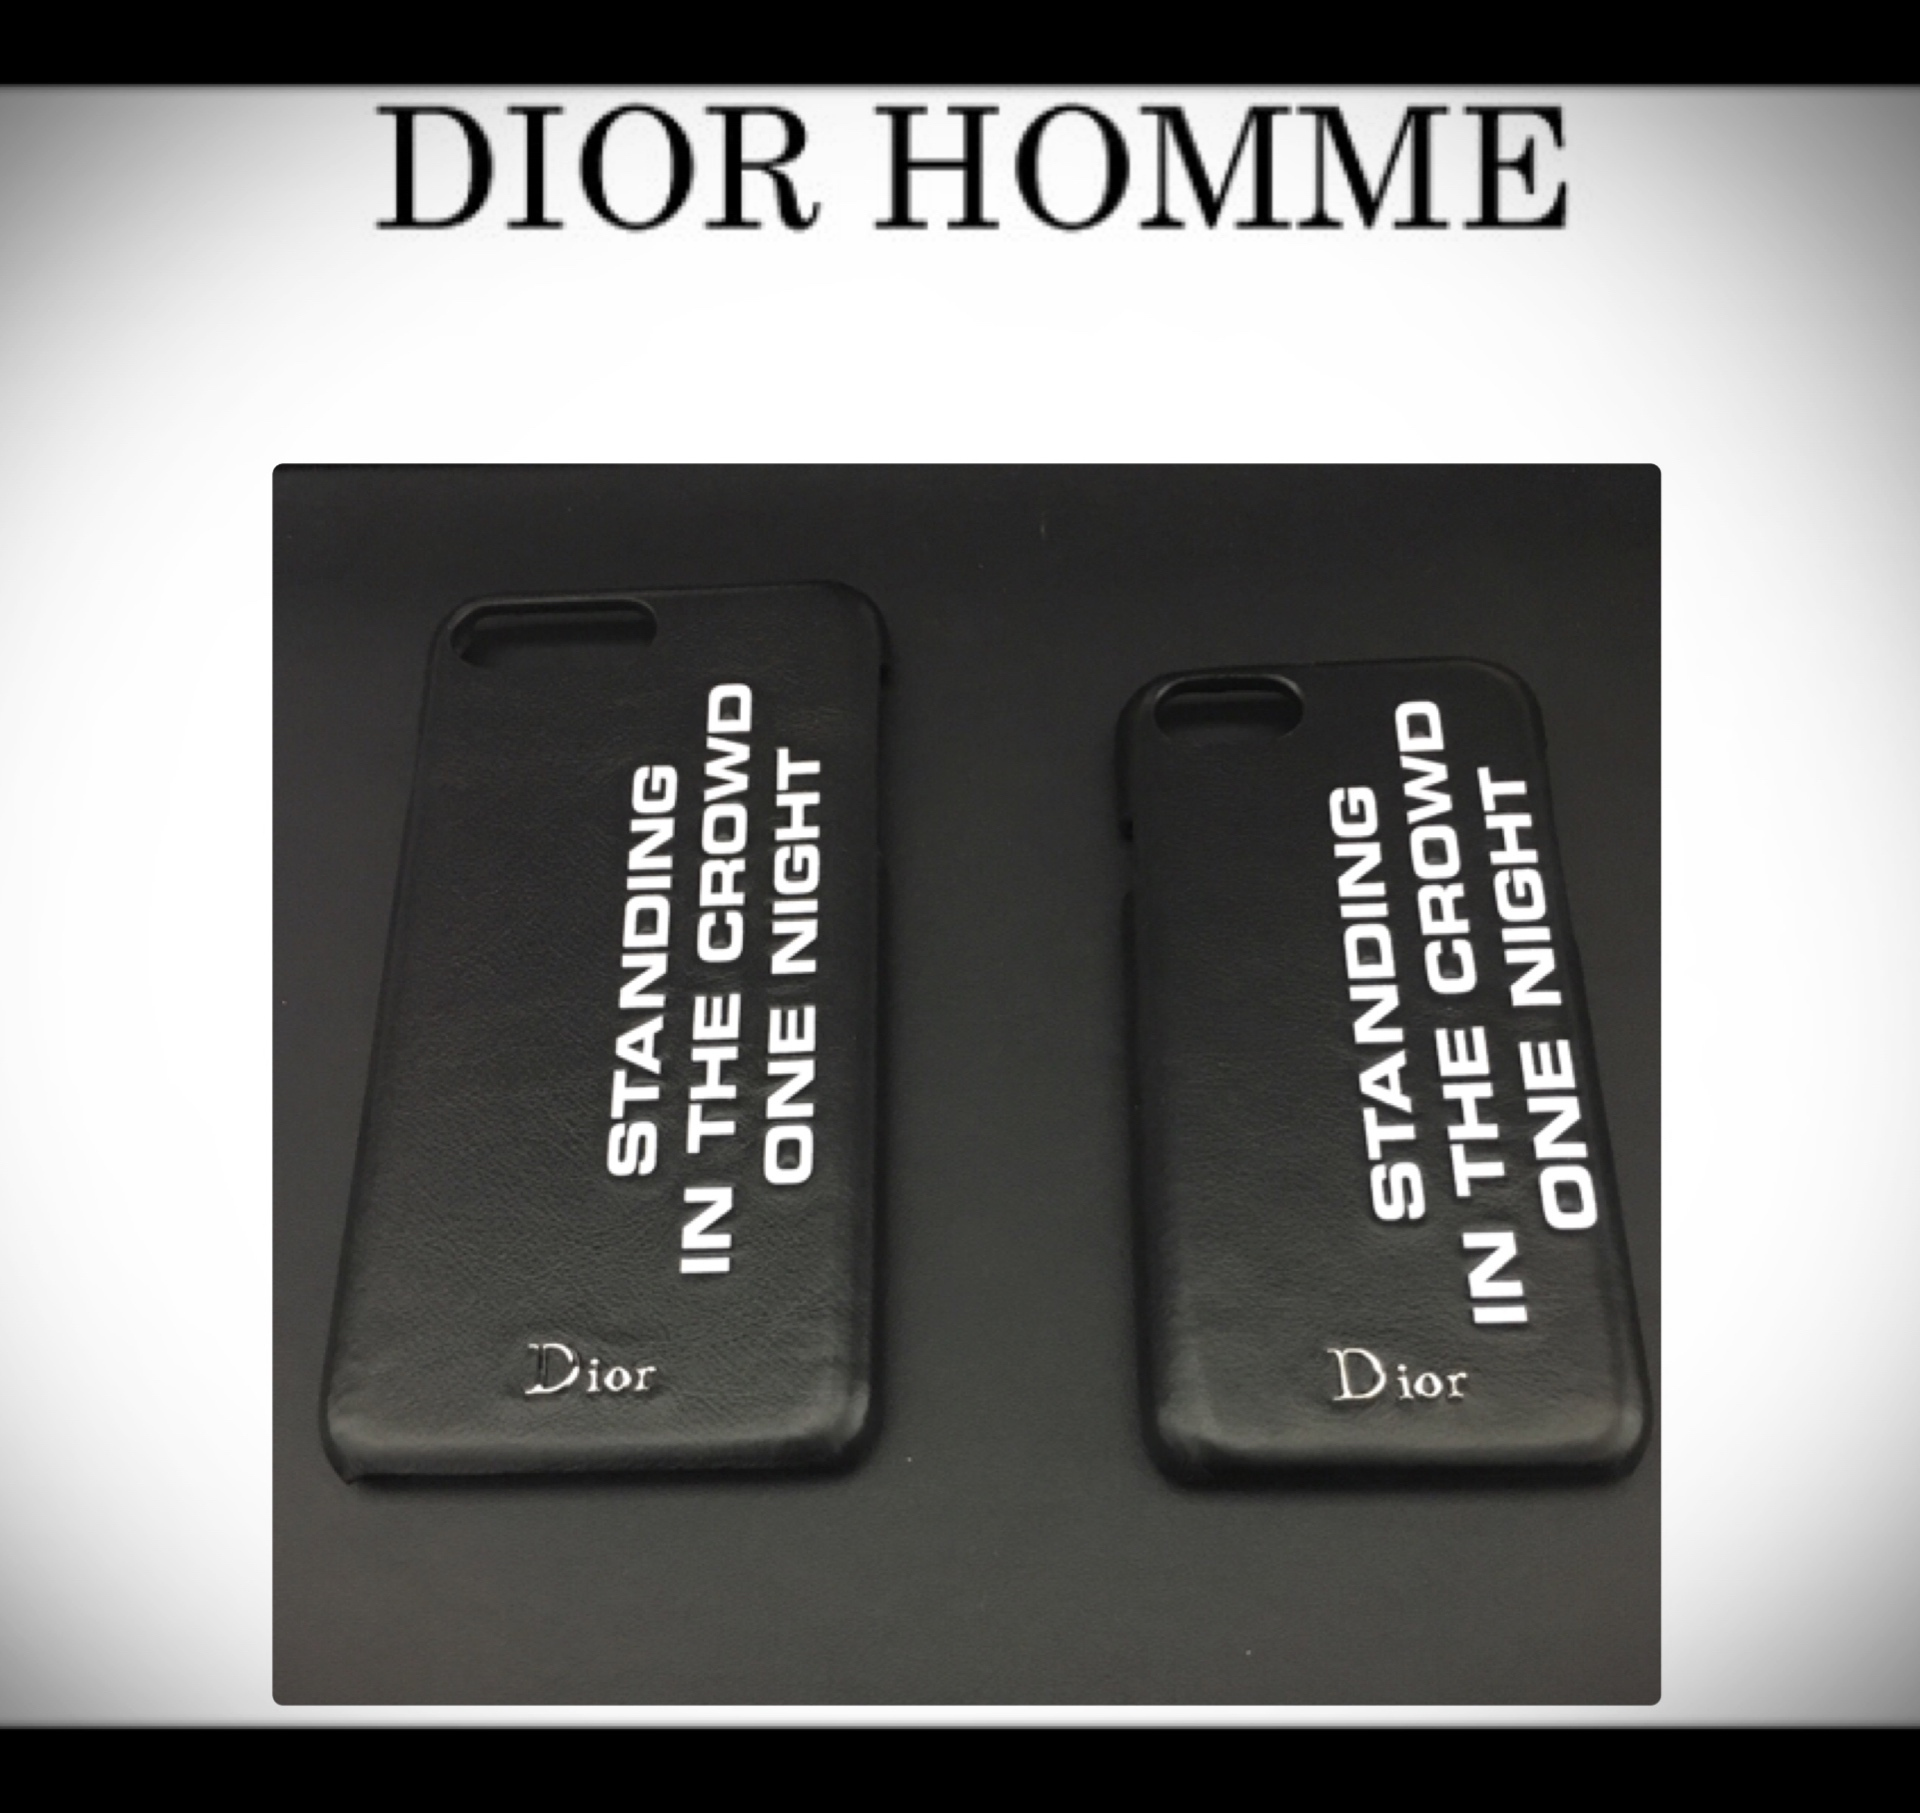 DIOR HOMME★iphone7.8/7.8plus対応ケース★